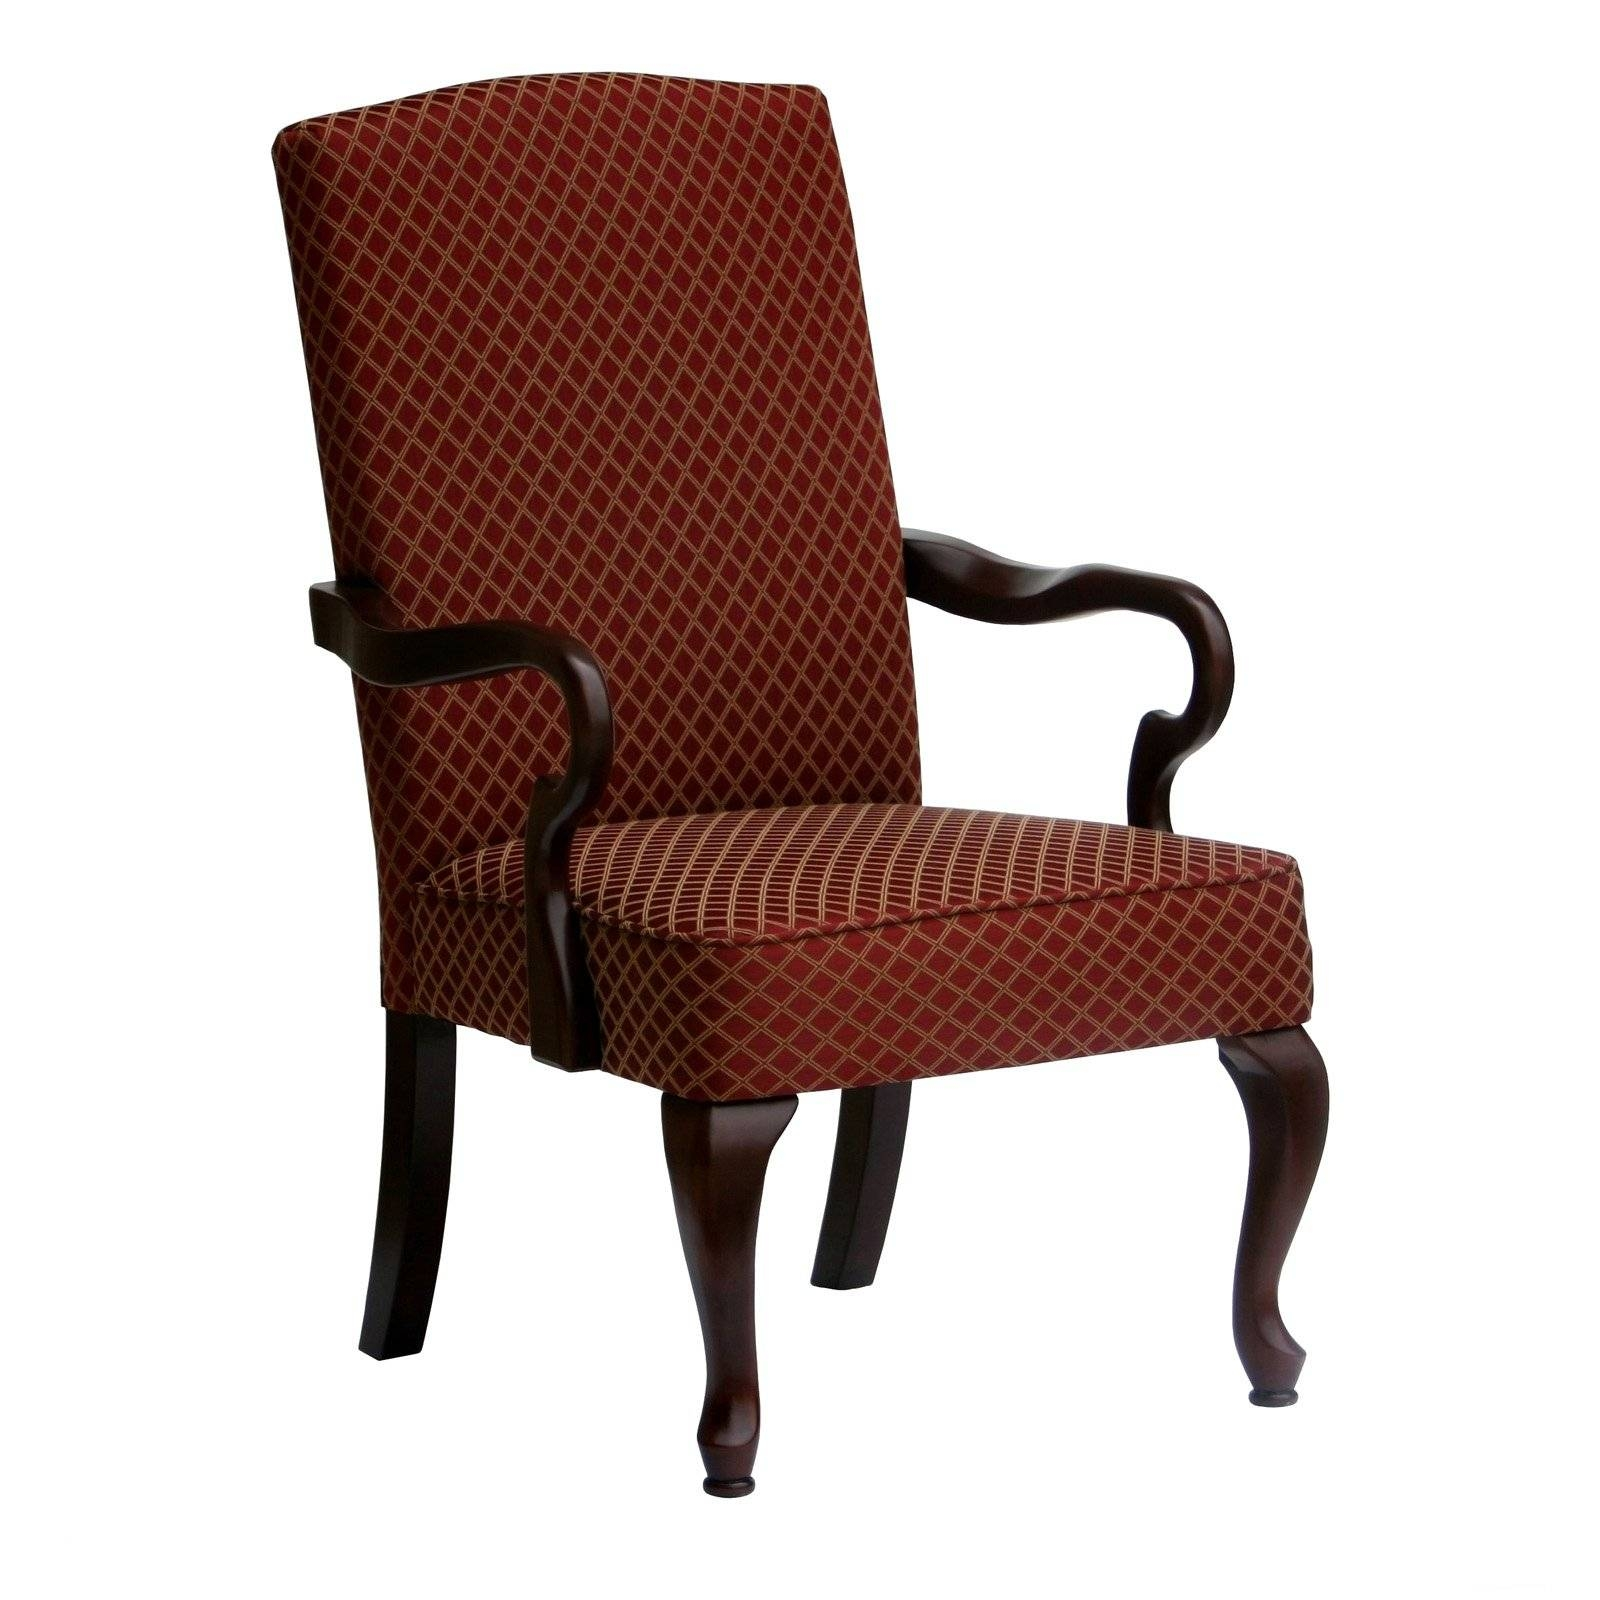 Madison Living Room Sofa Arm Chair Accent Chair Amp Ottoman Luxury throughout Sofa Arm Chairs (Image 11 of 15)